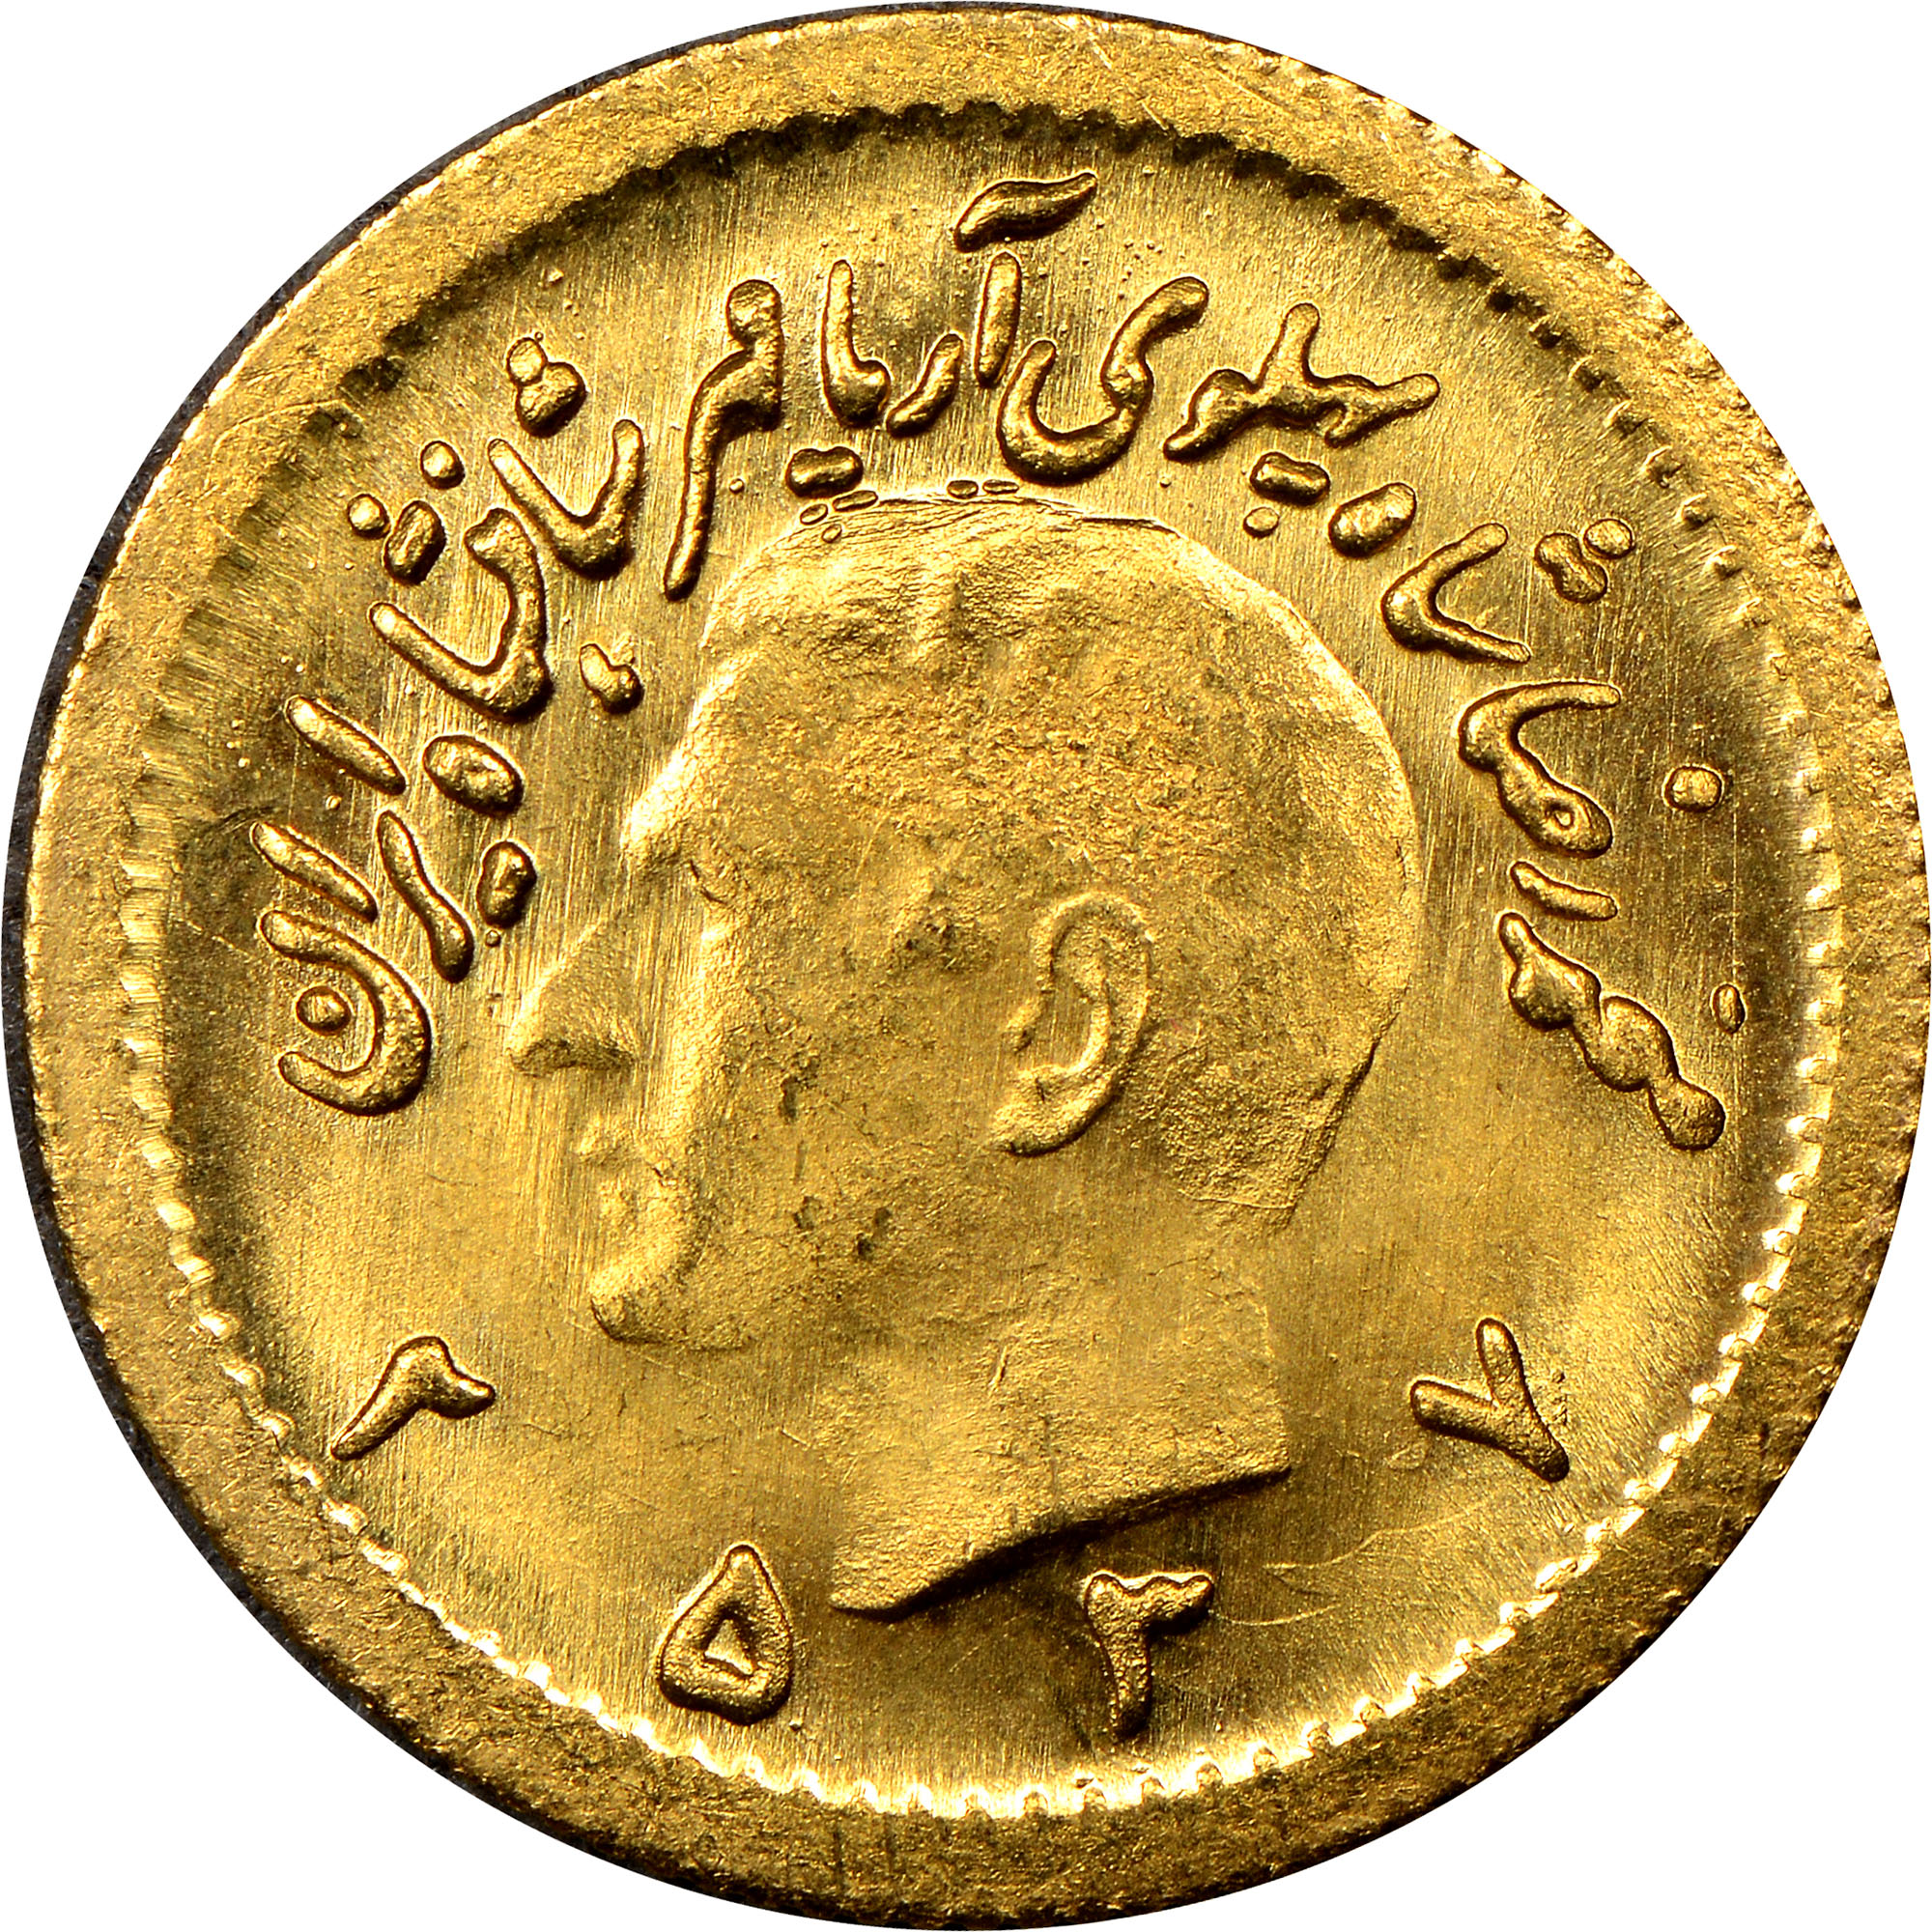 Aydin Coins Amp Jewelry Buy Gold Coins Silver Coins